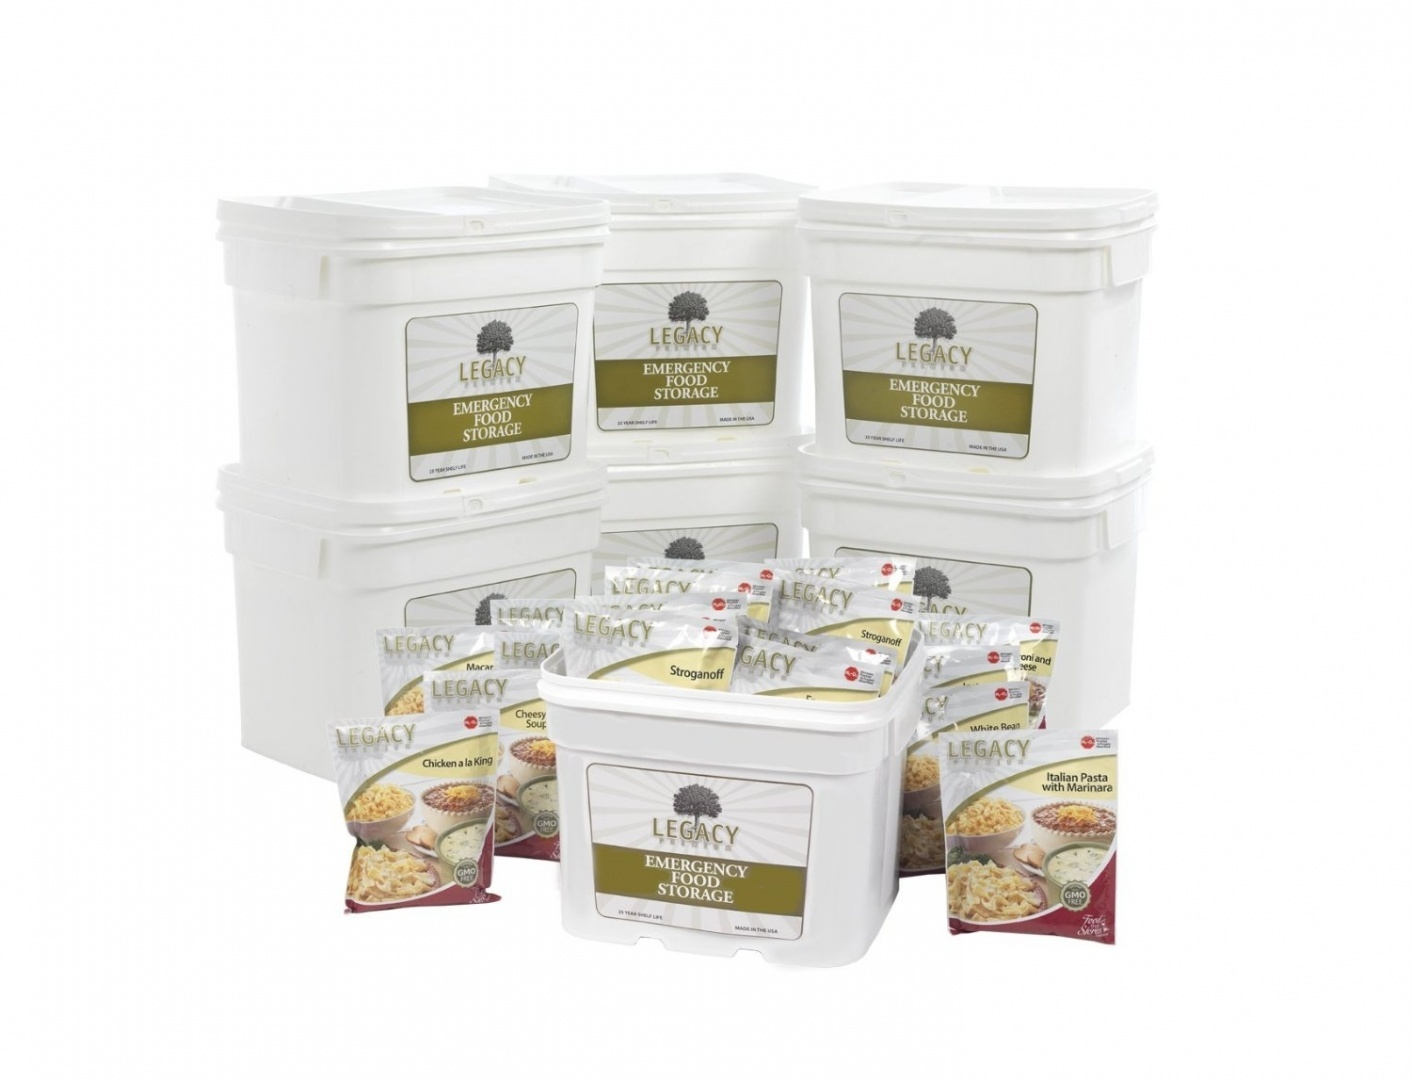 Bulk Dehydrated Survival Food Storage 720 Servings Emergency Freeze Dried Prepper Supply 25 Year Shelf Life Survival Meals By Legacy Premium Food Storage Shop Online For Sports Outdoors In Australia